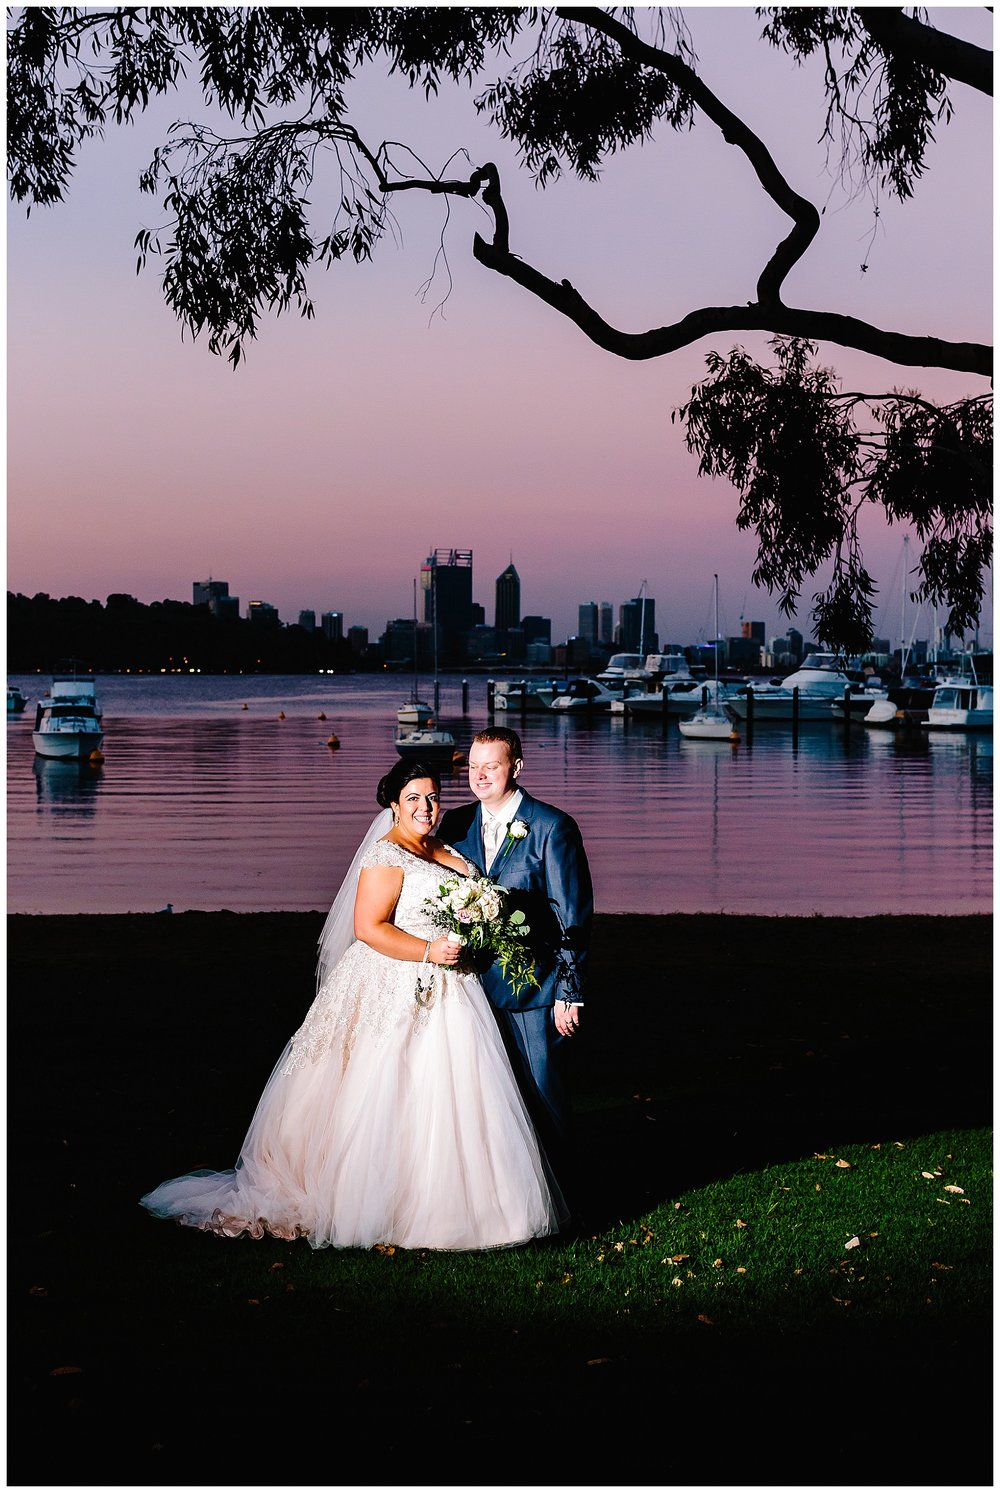 Sunset wedding at Matilda Bay